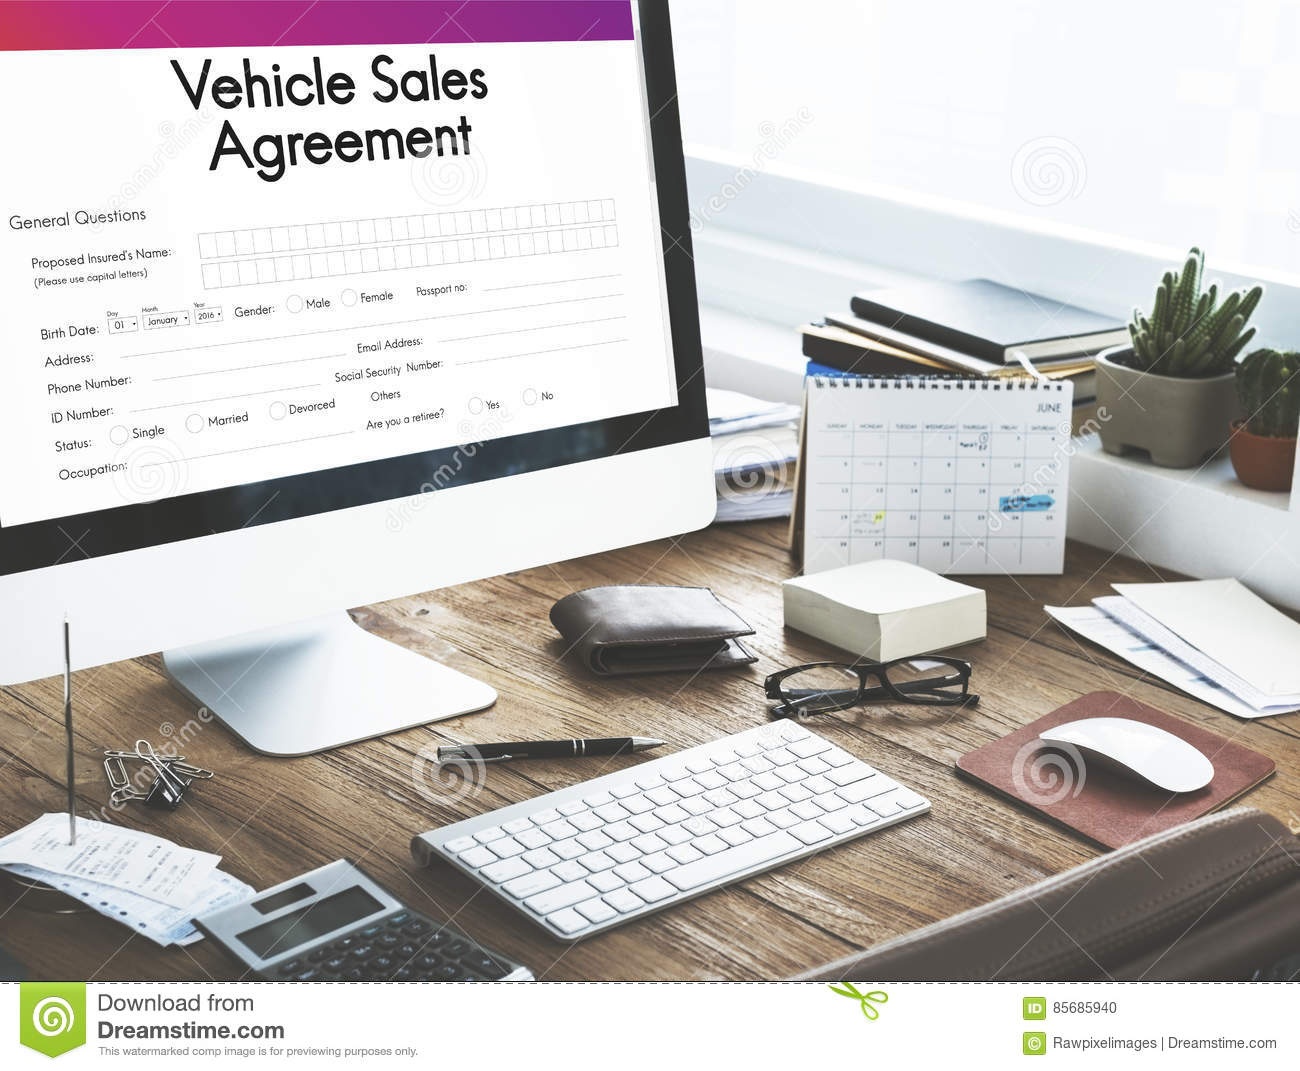 vehicle sales agreement form concept stock photo image of dress